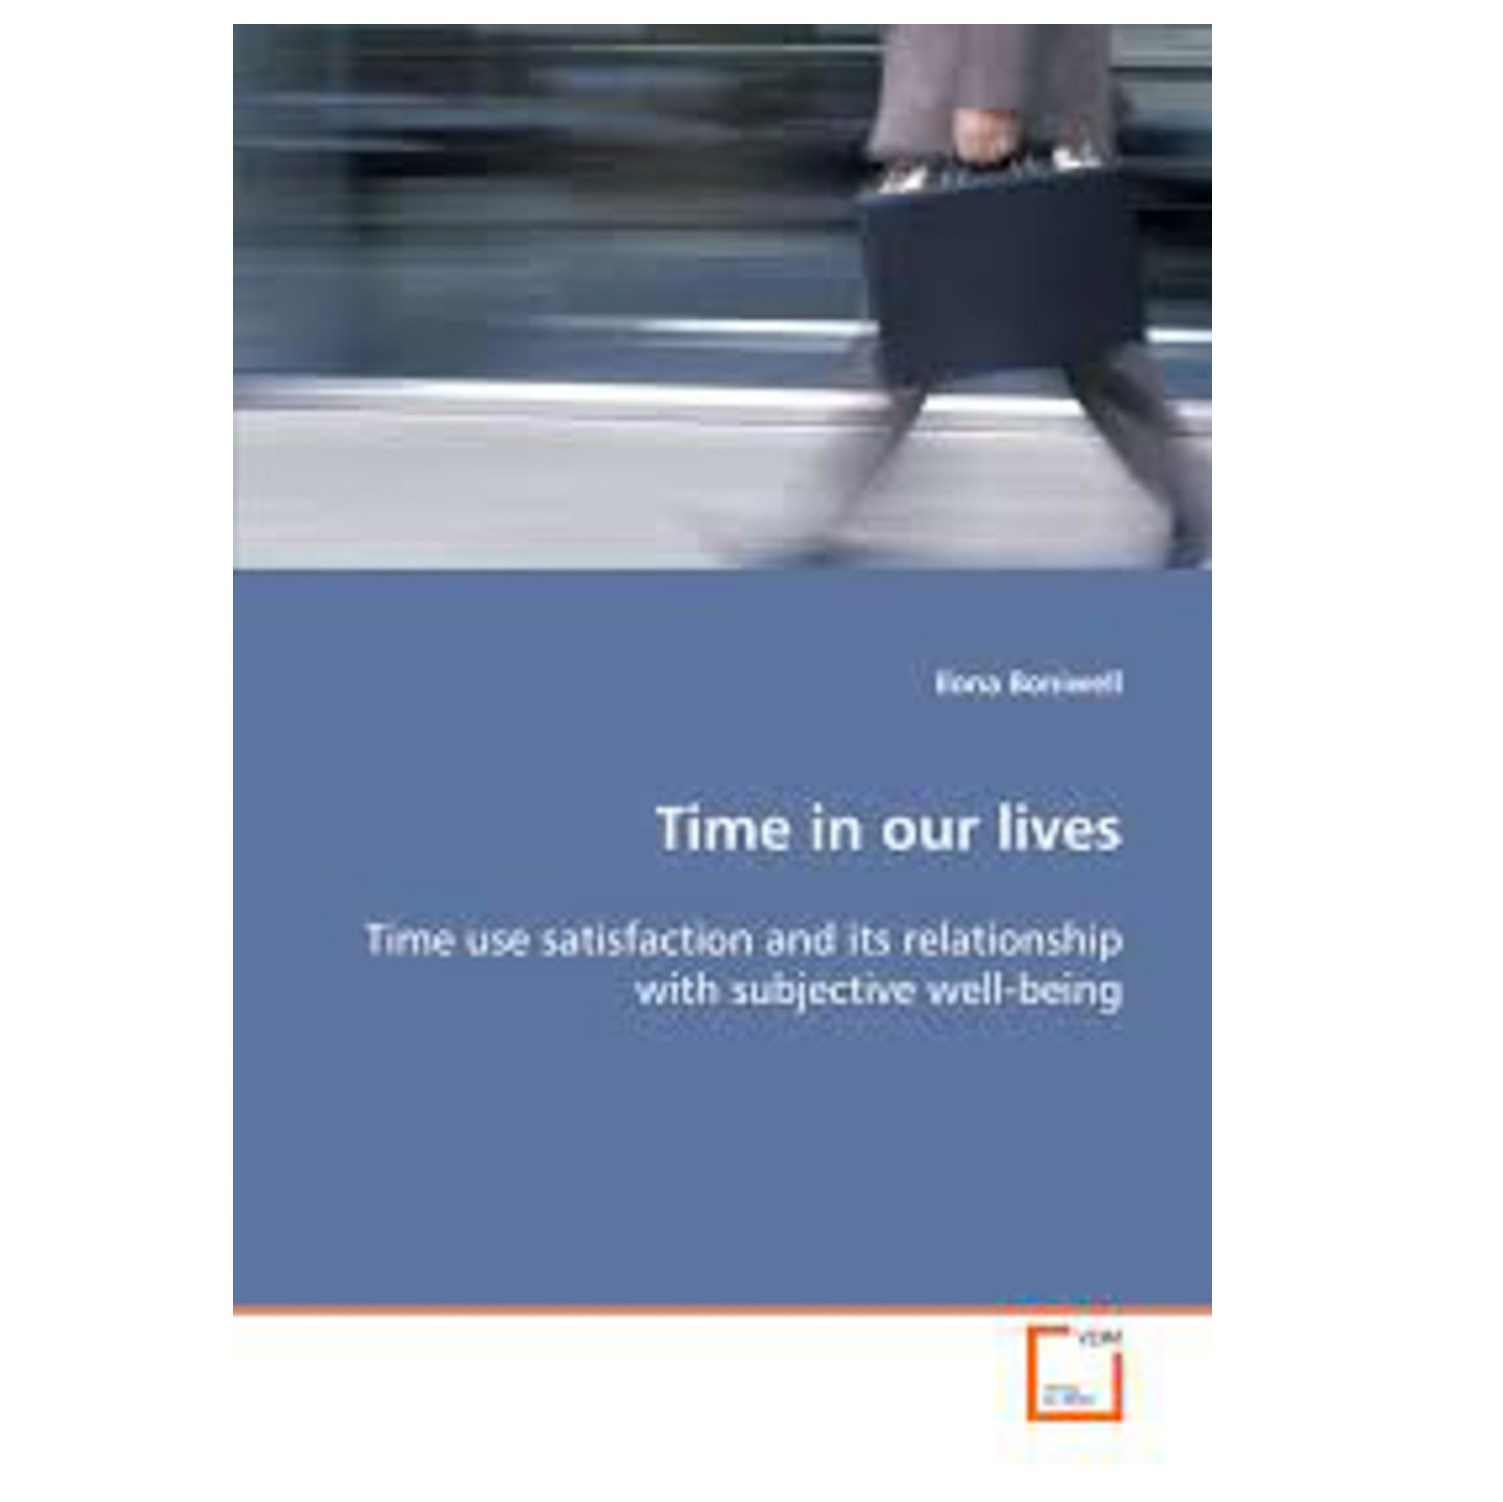 Book - Time in our lives